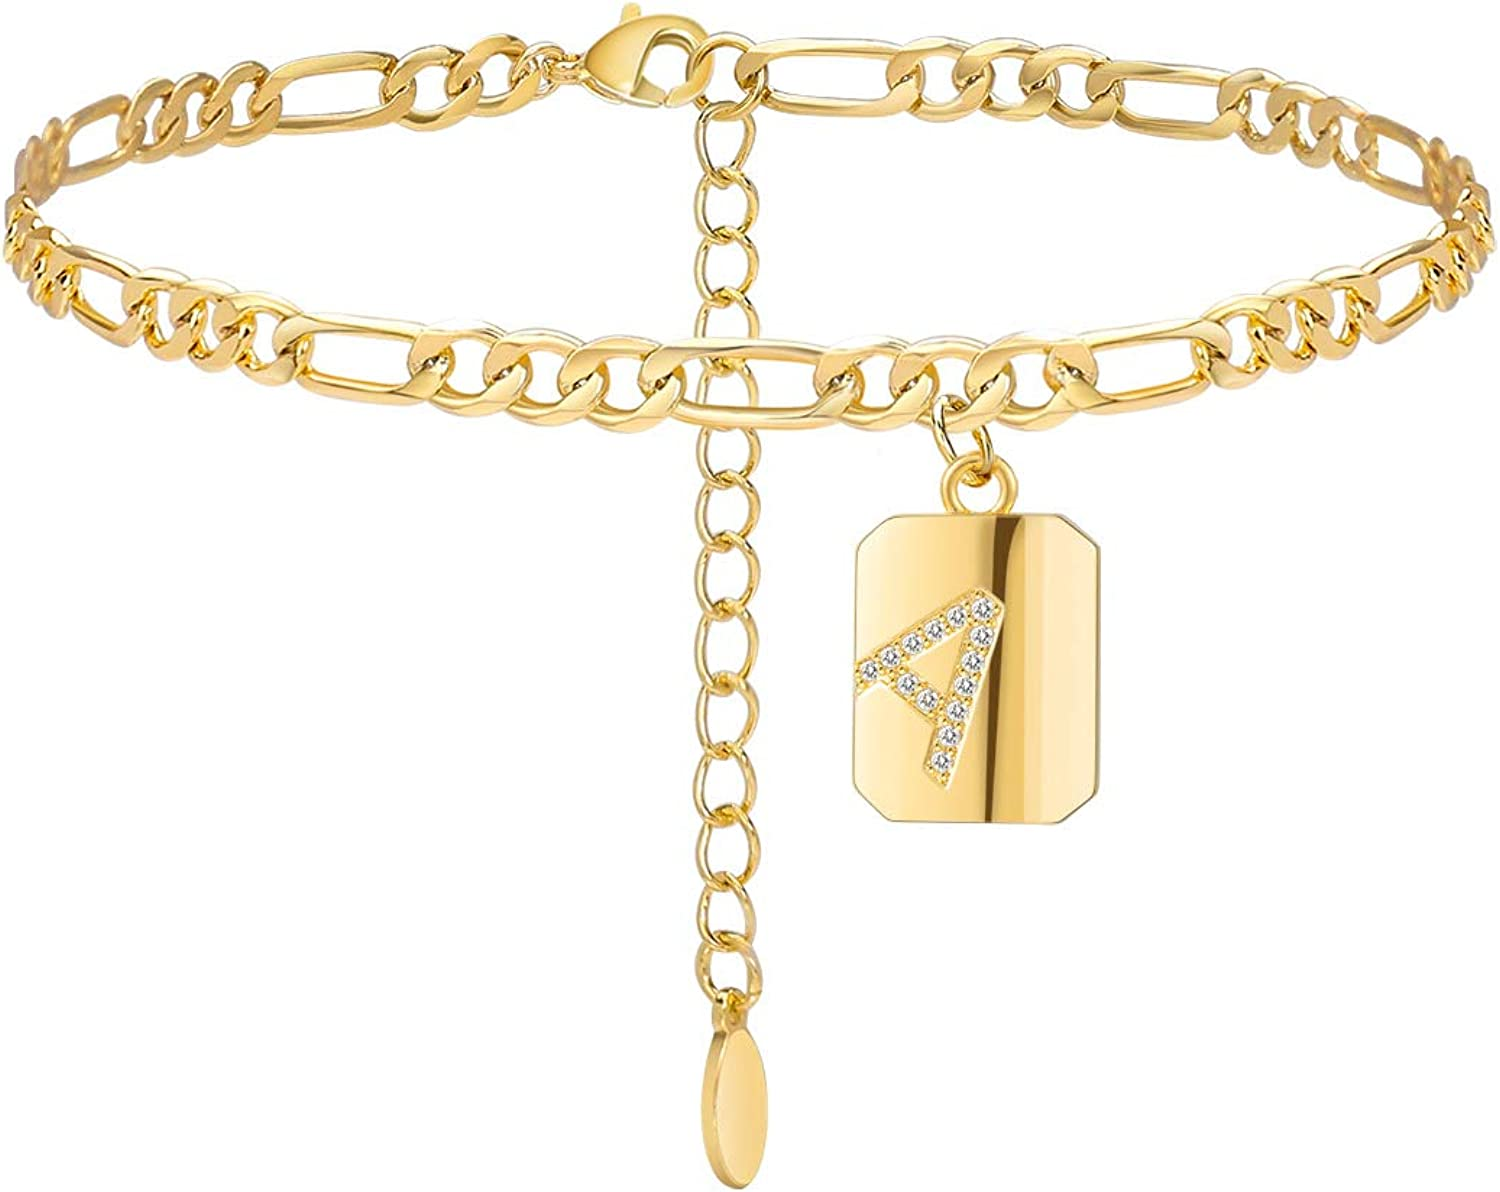 Estendly Initial Anklet 14k Gold Plated 4mm Figaro Chain Square Charm Ankle Bracelet 26 Letters Alphabets Friendship Jewelry for Women